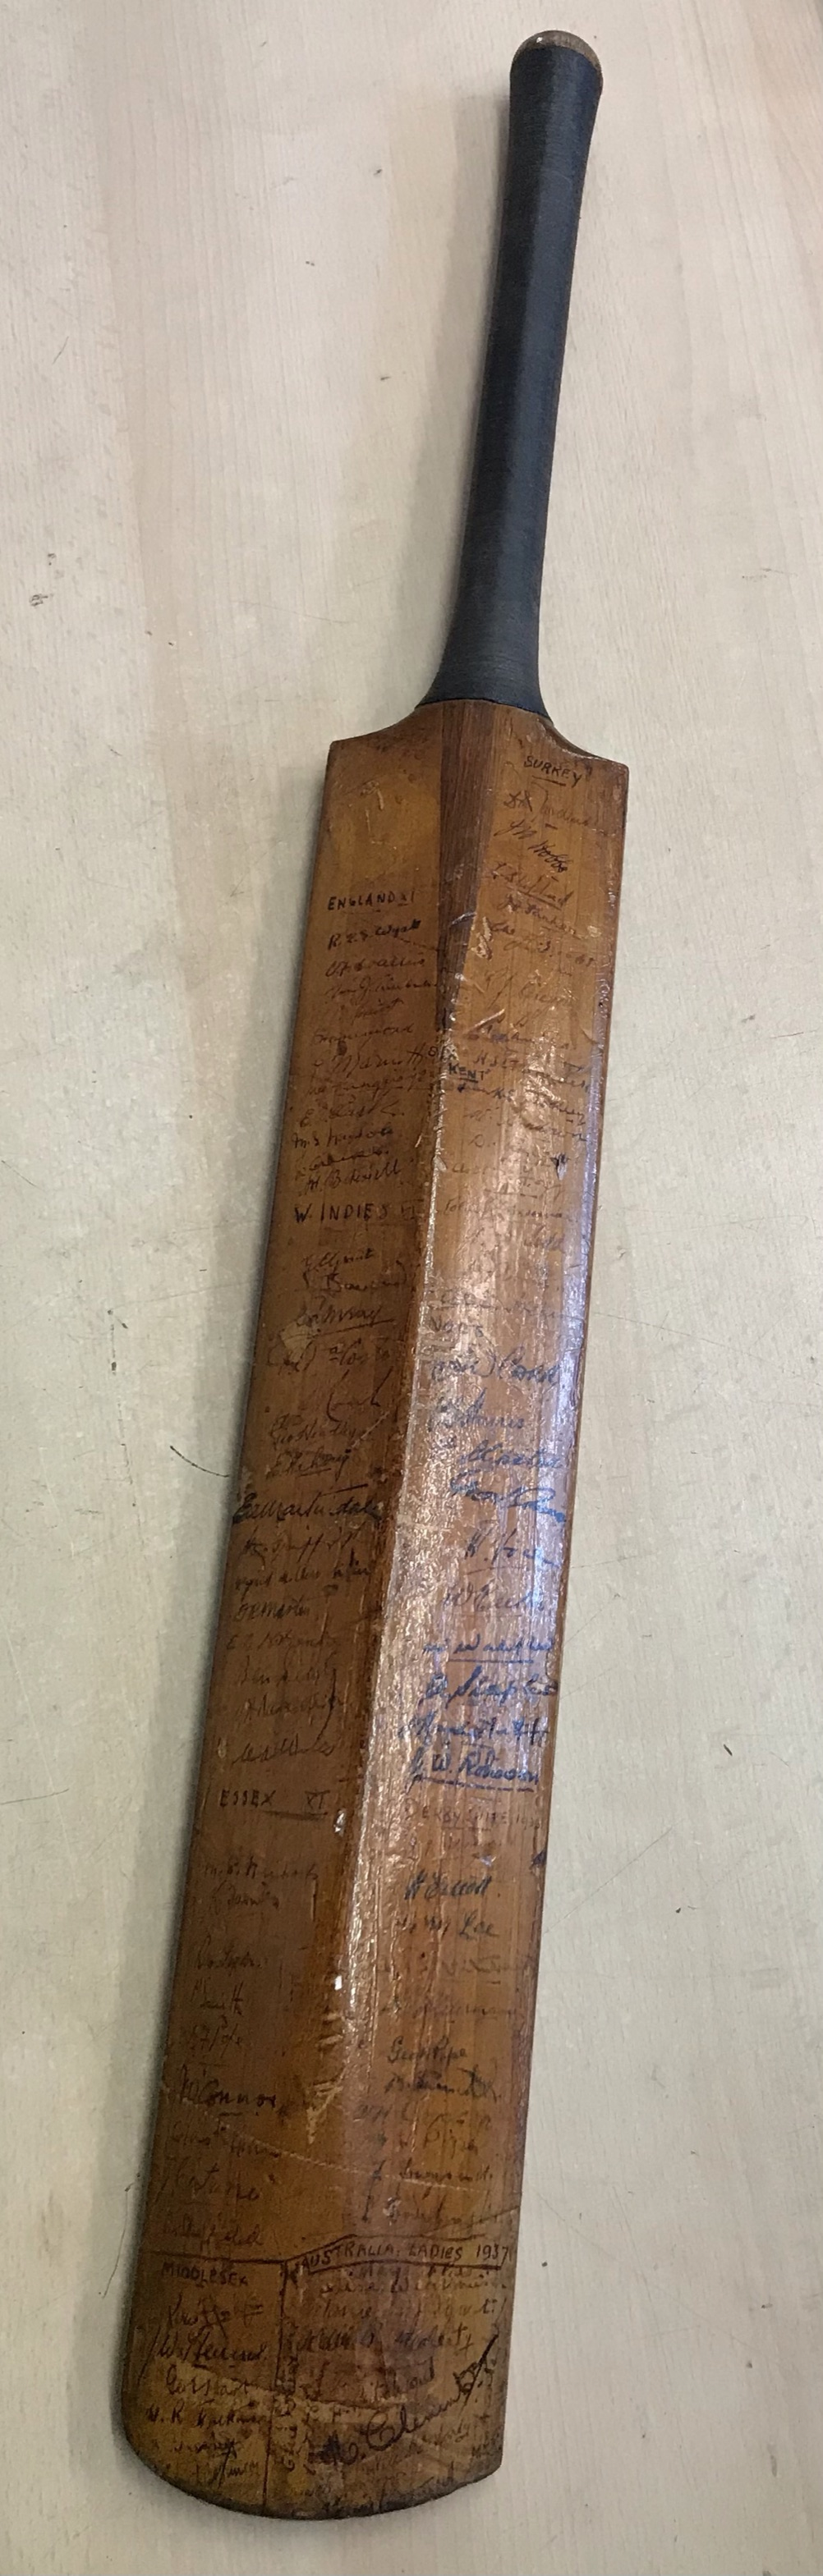 A Hobbs No 6 Cricket Bat autographed with 1934 Australia including Bradman, Chipperfield, O'